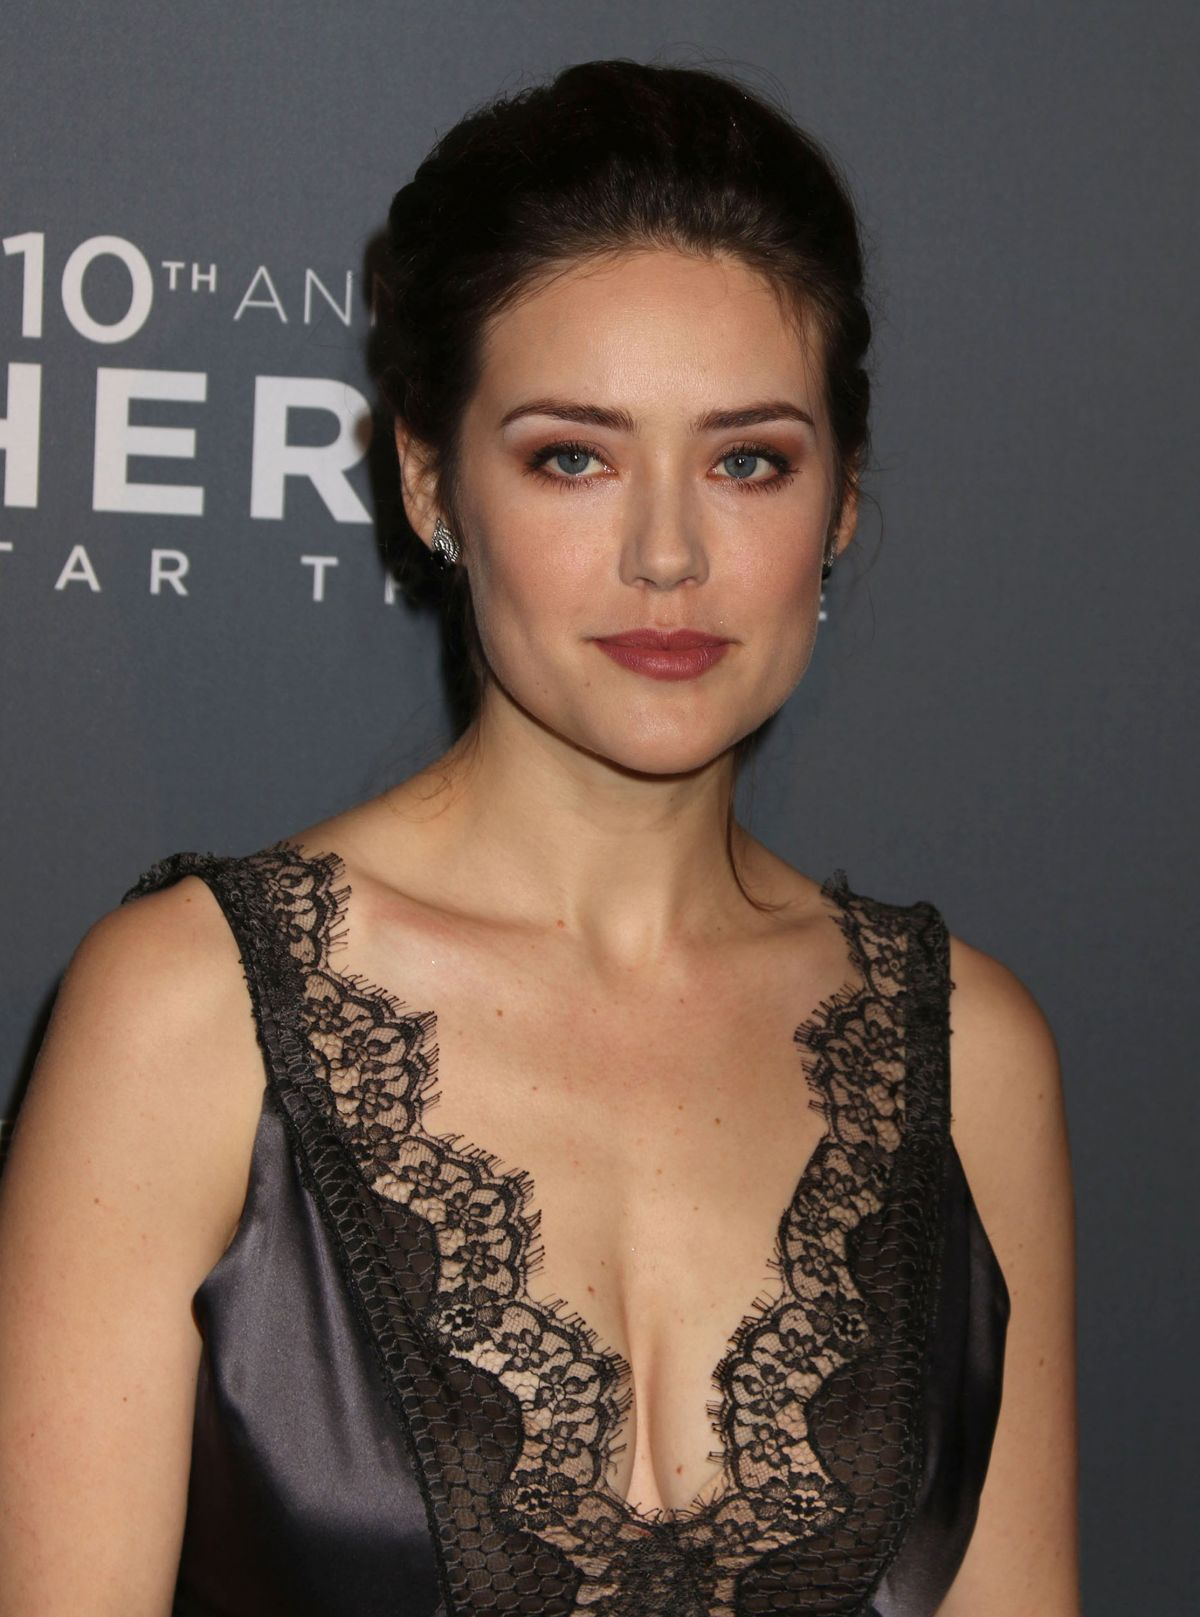 Fotos Megan Boone naked (59 photos), Sexy, Fappening, Boobs, braless 2015